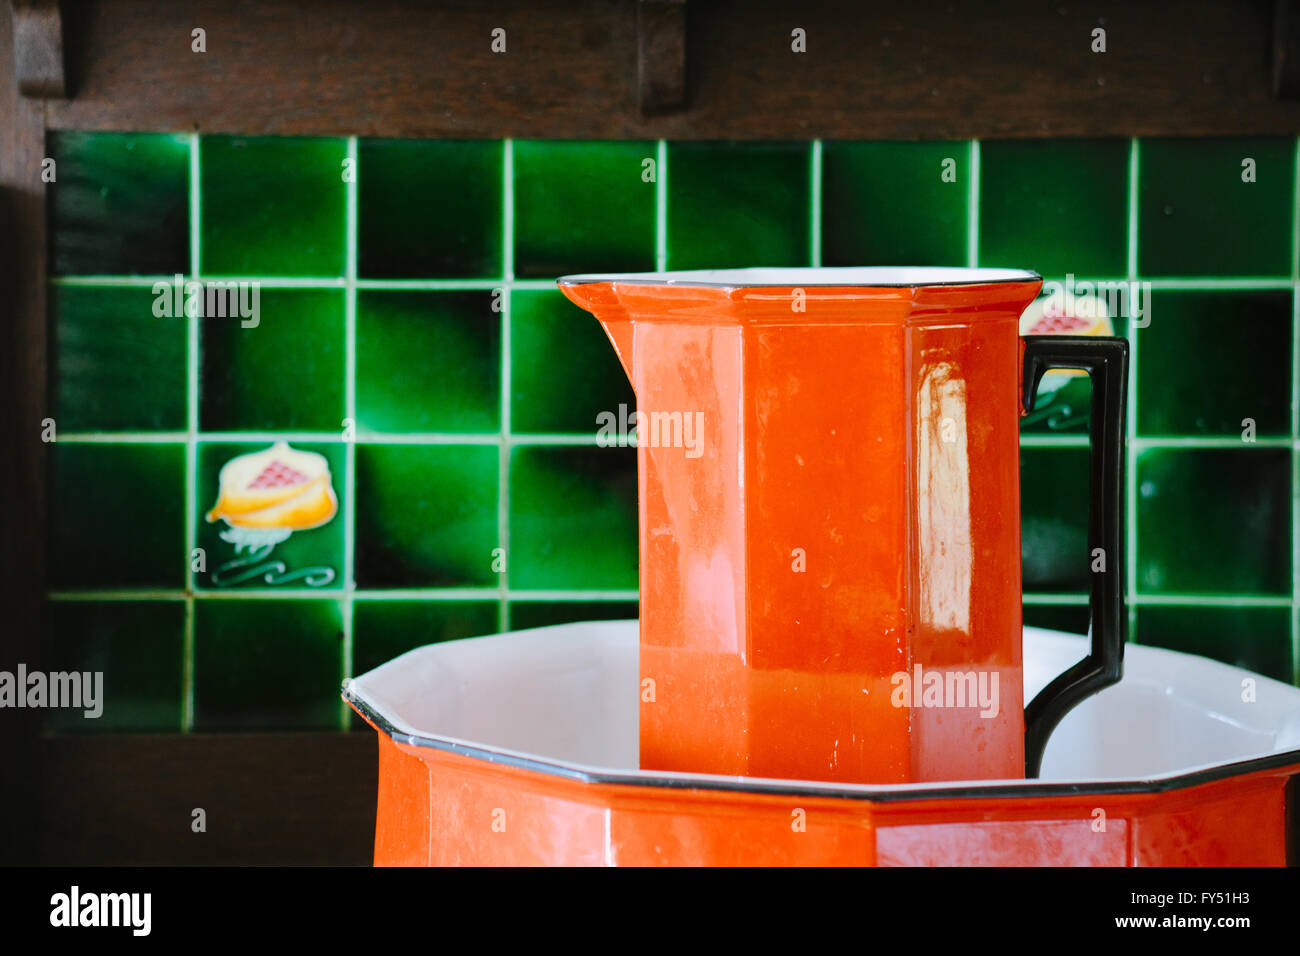 Vintage orange wash basin and sink with green tiles in the background. - Stock Image